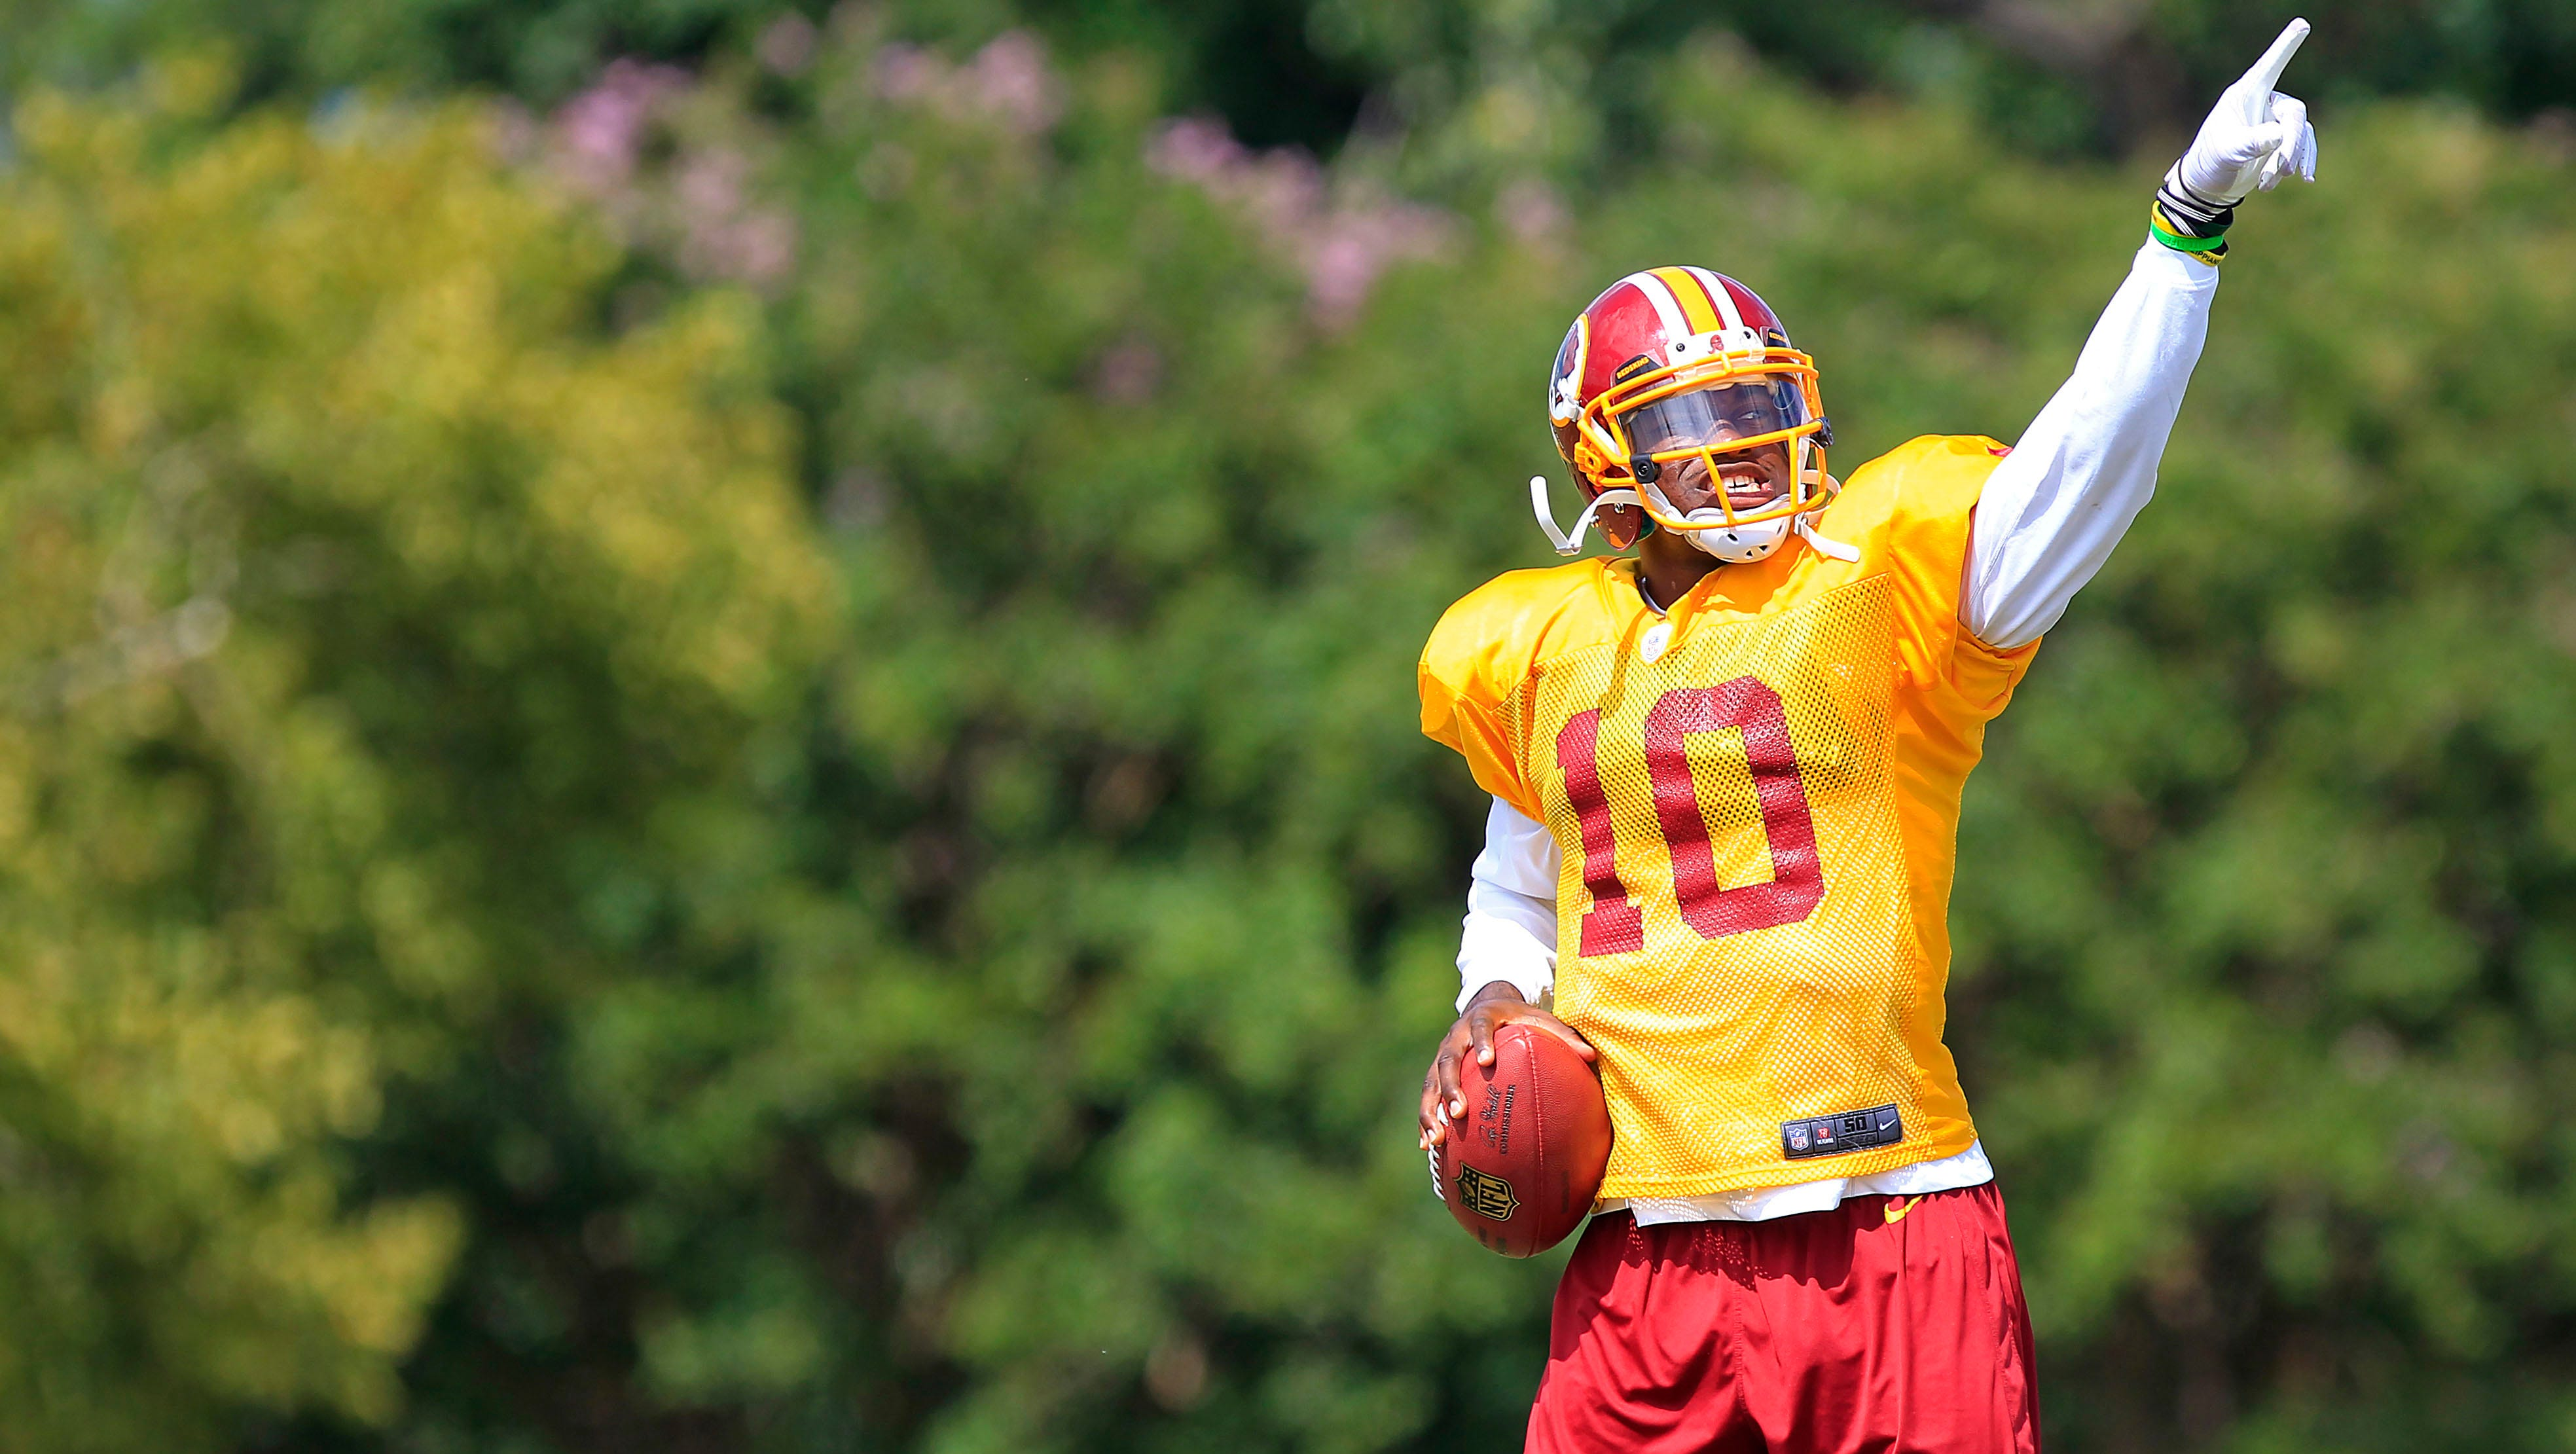 Washington Redskins quarterback Robert Griffin III (10) gestures prior to throwing the ball during afternoon practiceon Aug. 13.